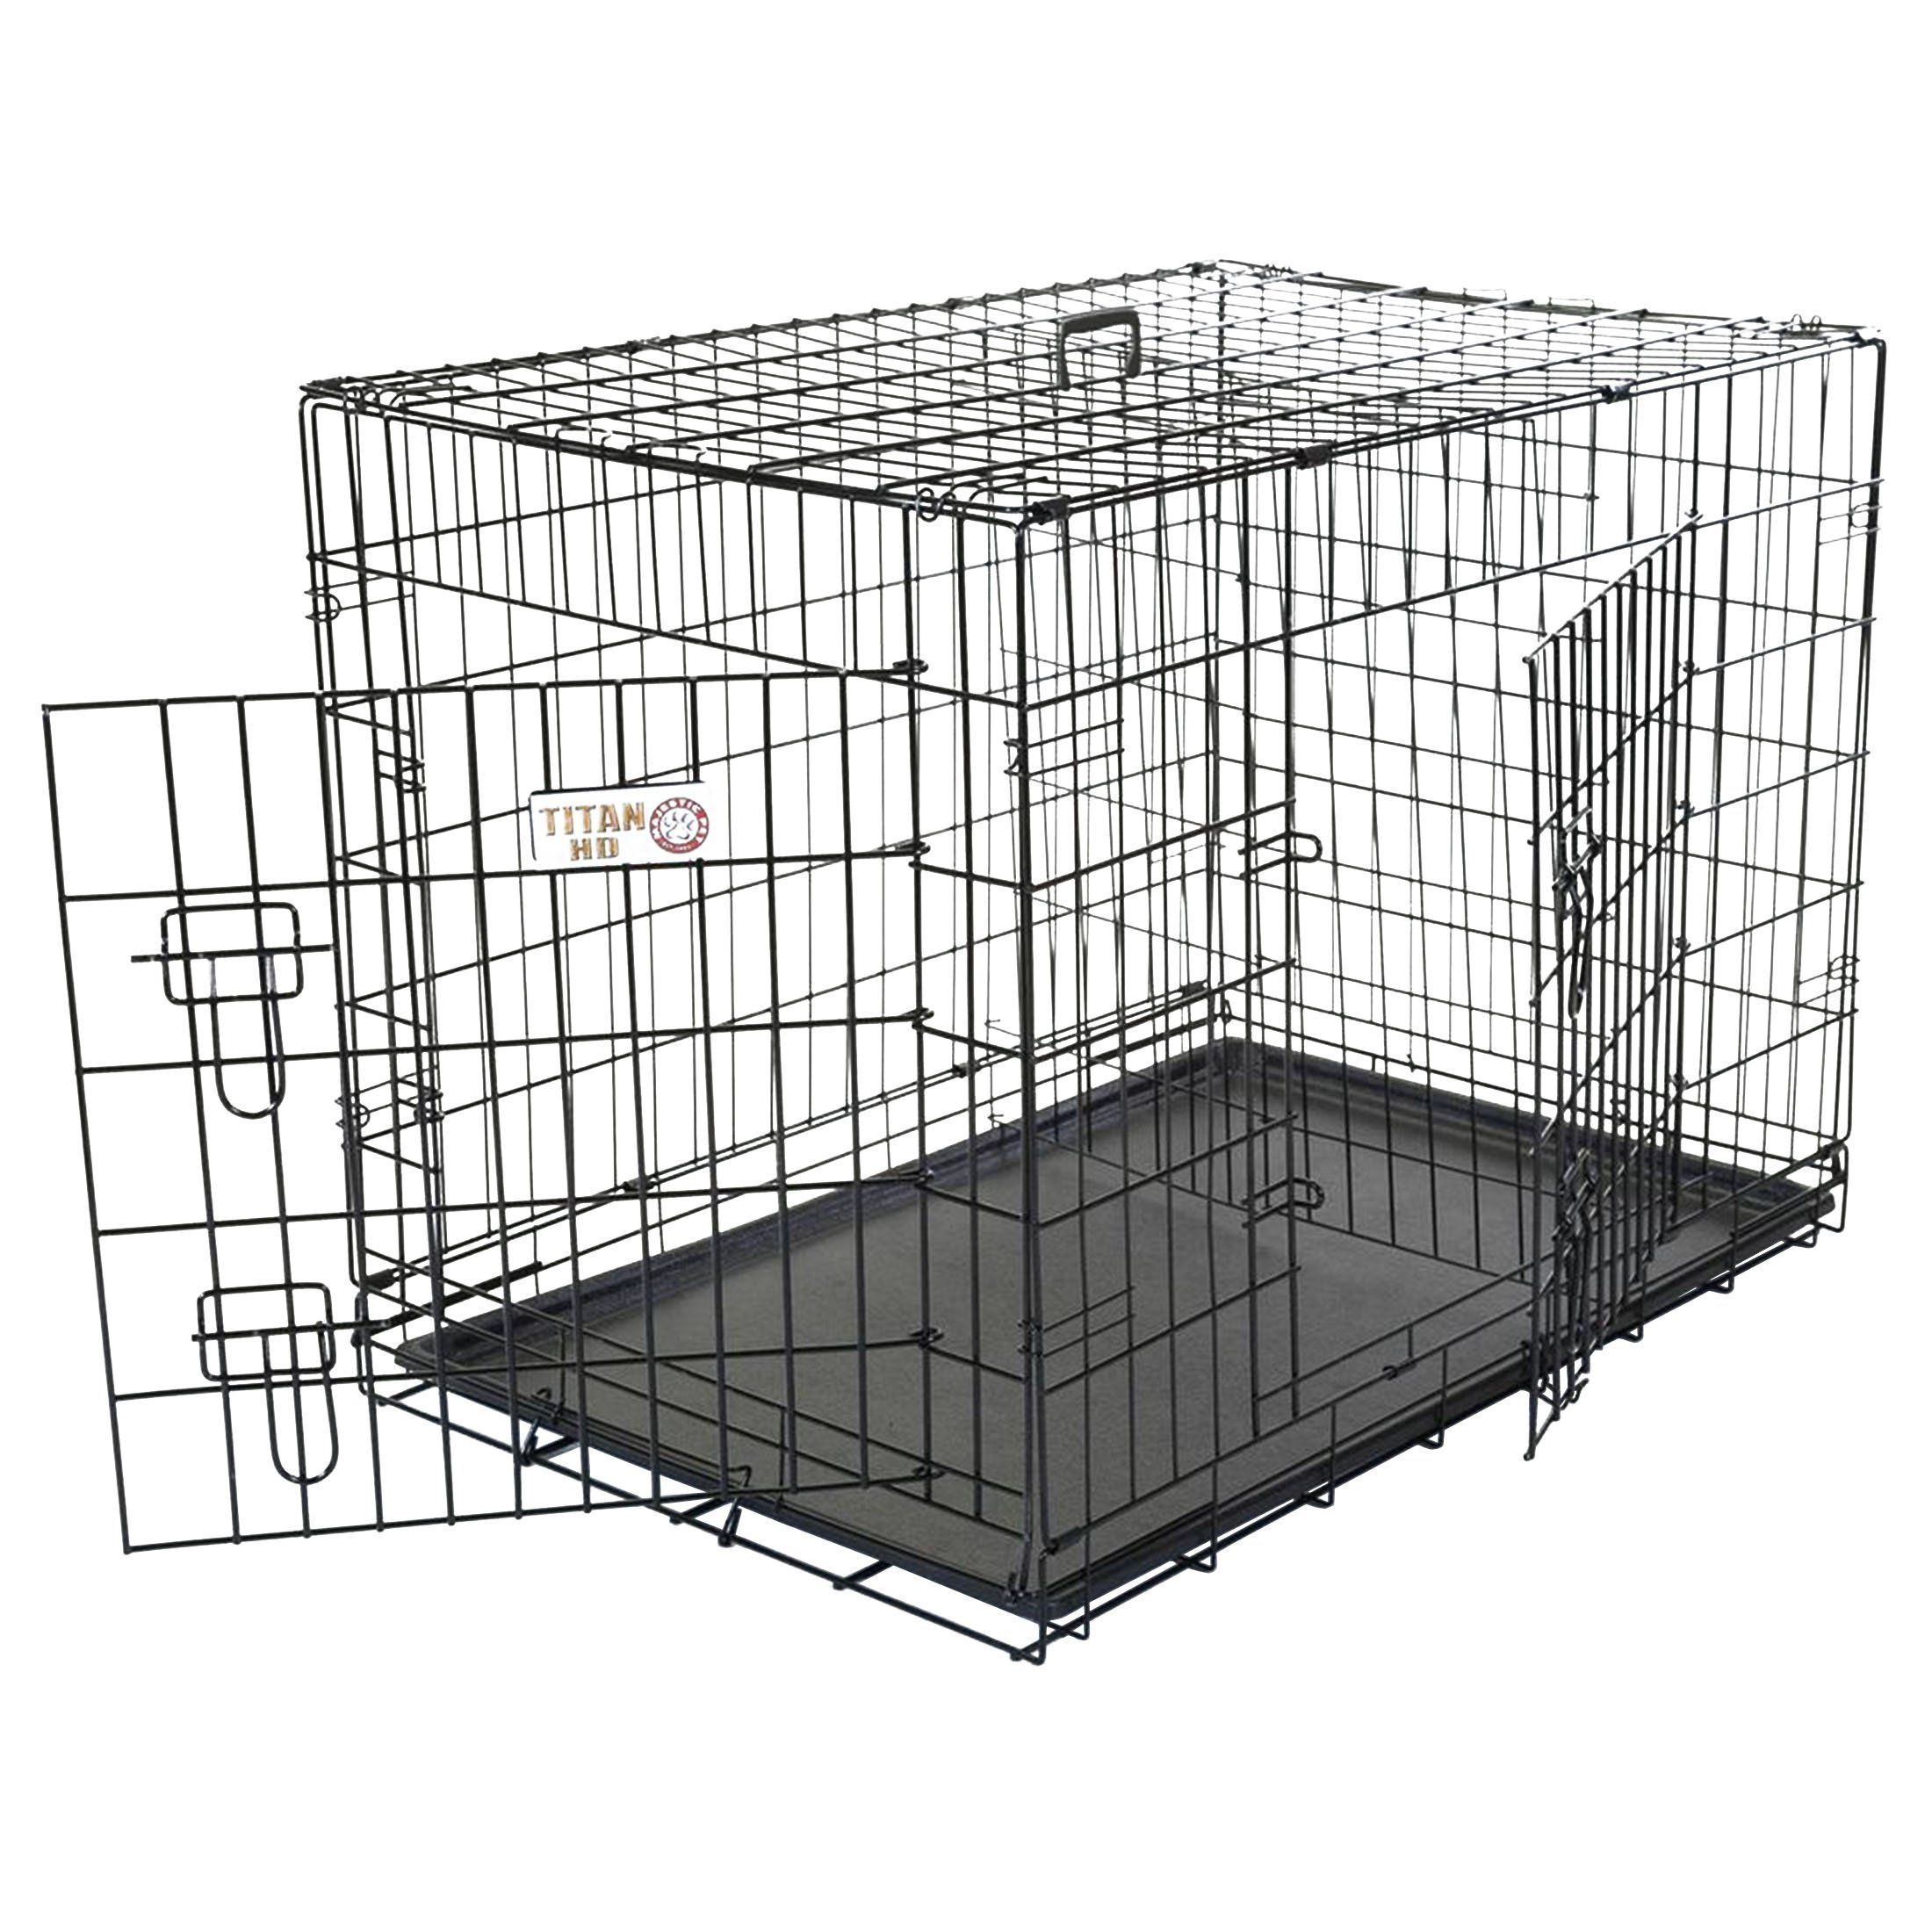 Small Dog Crate Majestic Pet 30 Inch Double Door Folding Dog Crate By Products Medium Examine This Outstanding Folding Dog Crate Large Dog Crate Dog Crate